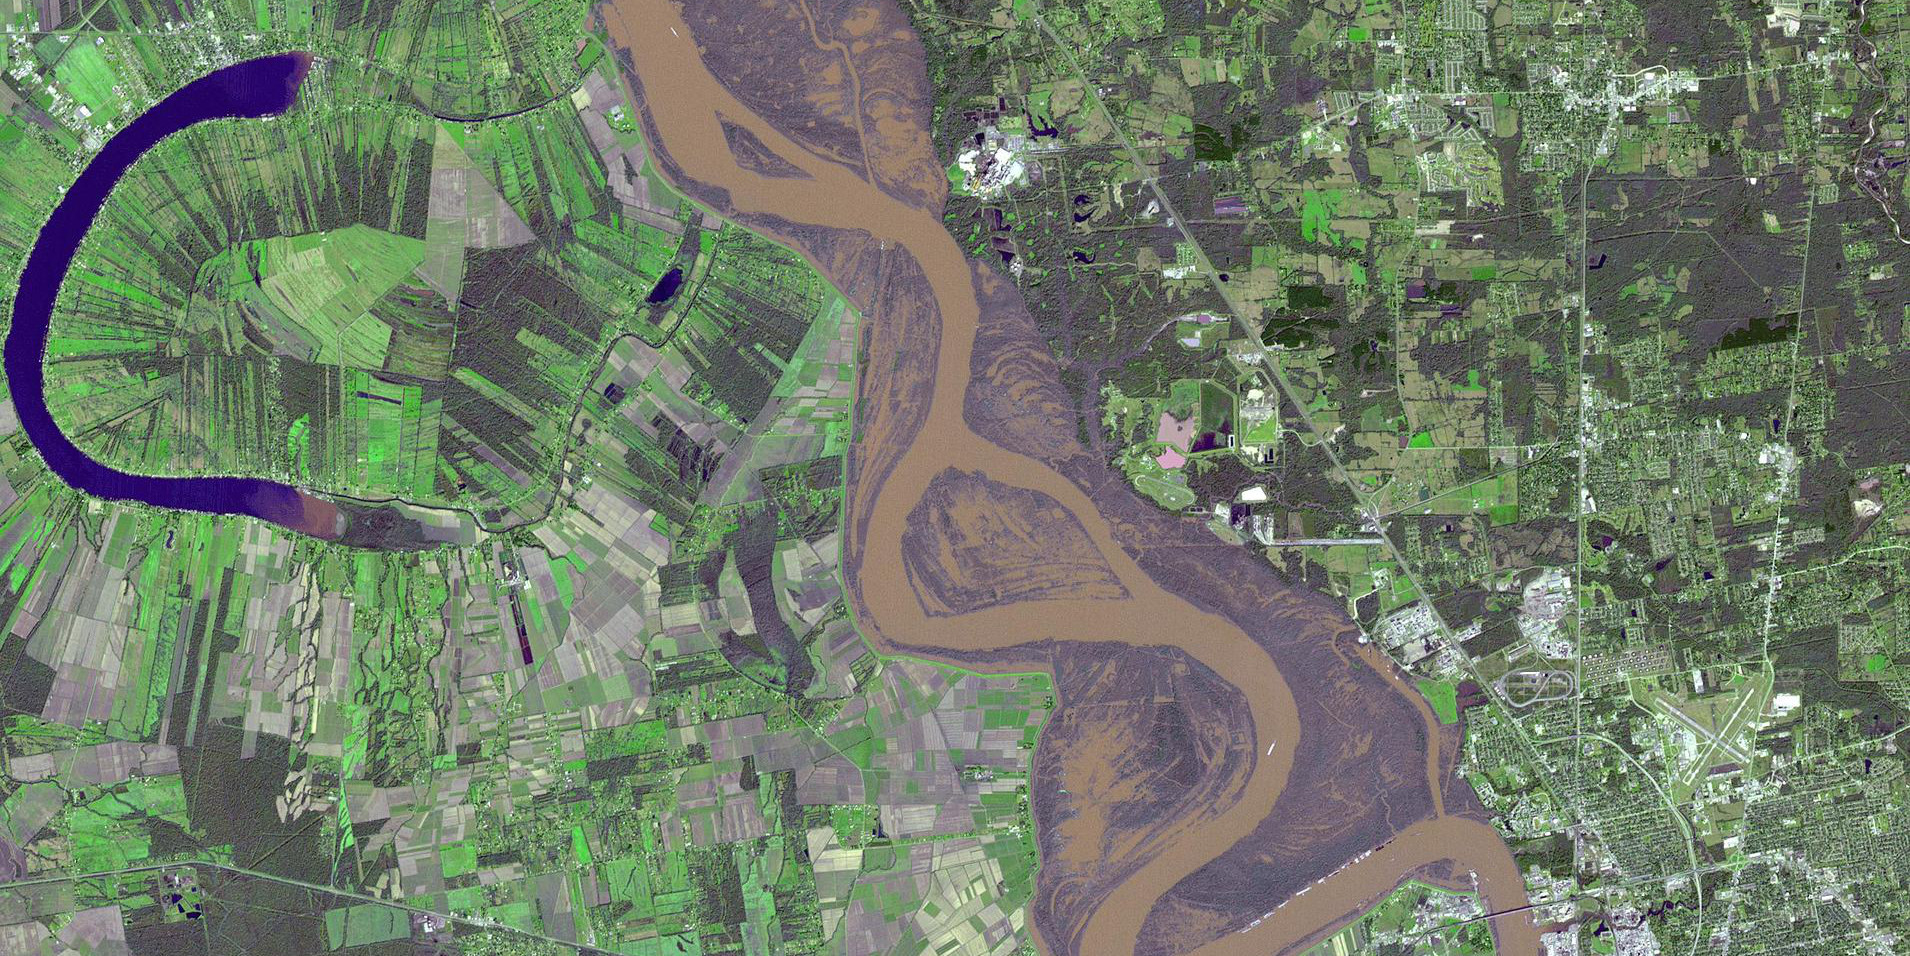 Image Credit: NASA Terra spacecraft shows major flooding along the Mississippi River, 2016.